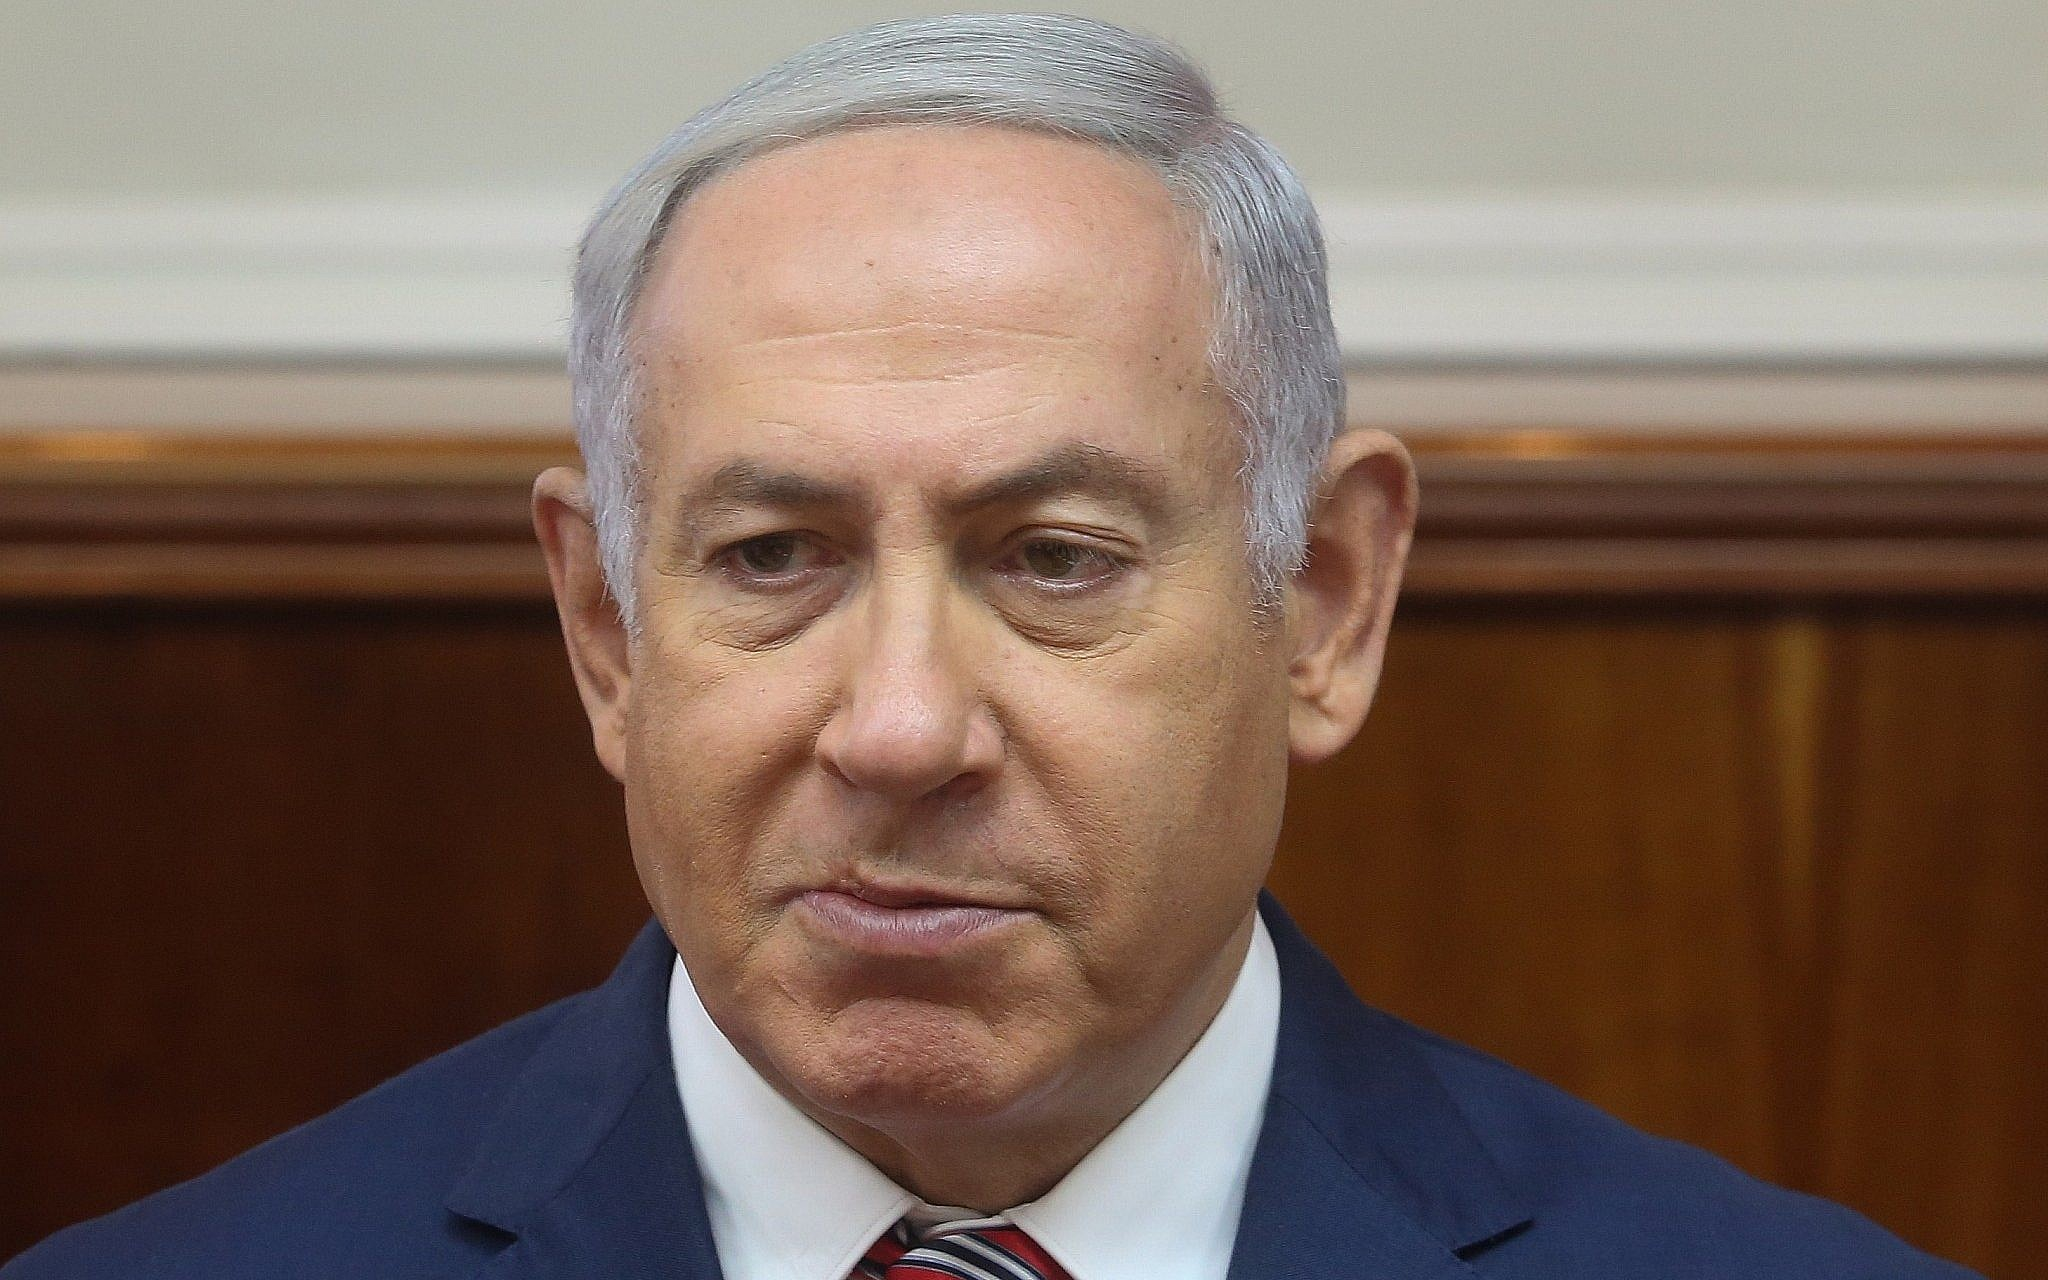 Prime Minister Benjamin Netanyahu at the weekly cabinet meeting at the Prime Minister's Office in Jerusalem